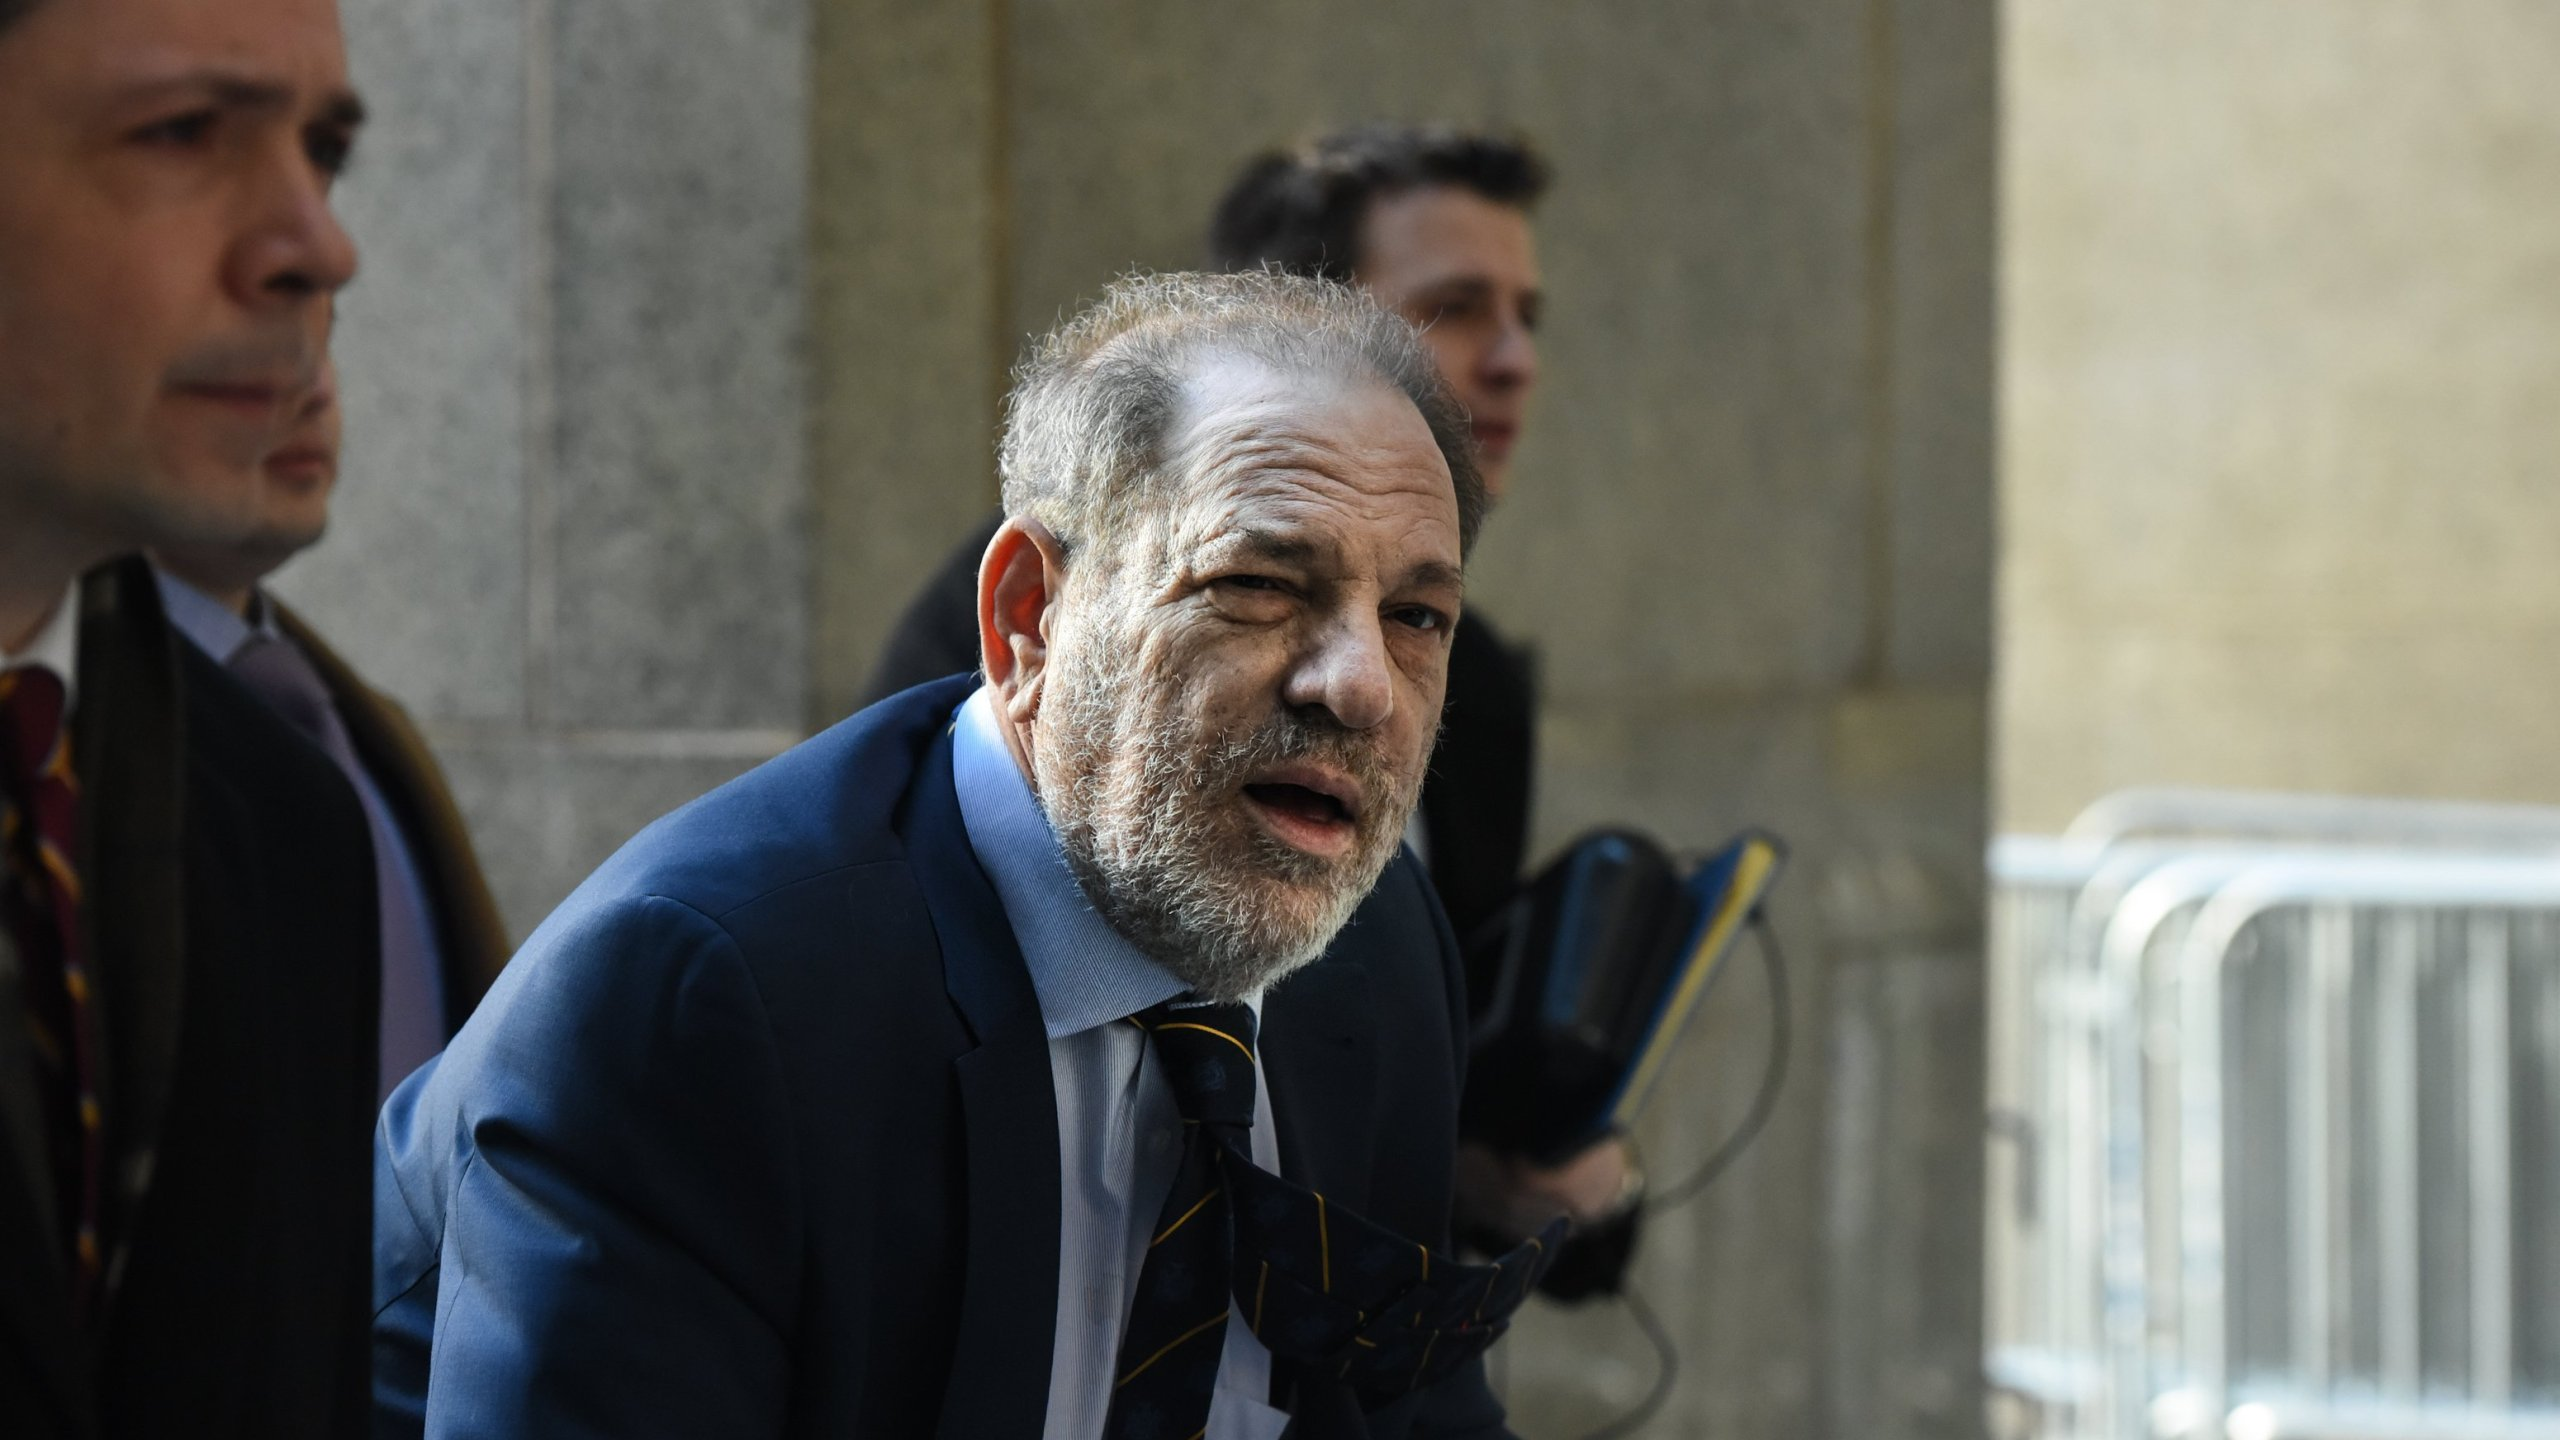 Movie producer Harvey Weinstein arrives for his sexual assault trial at New York Criminal Court on Feb. 14, 2020, in New York City. (Credit: Stephanie Keith/Getty Images)